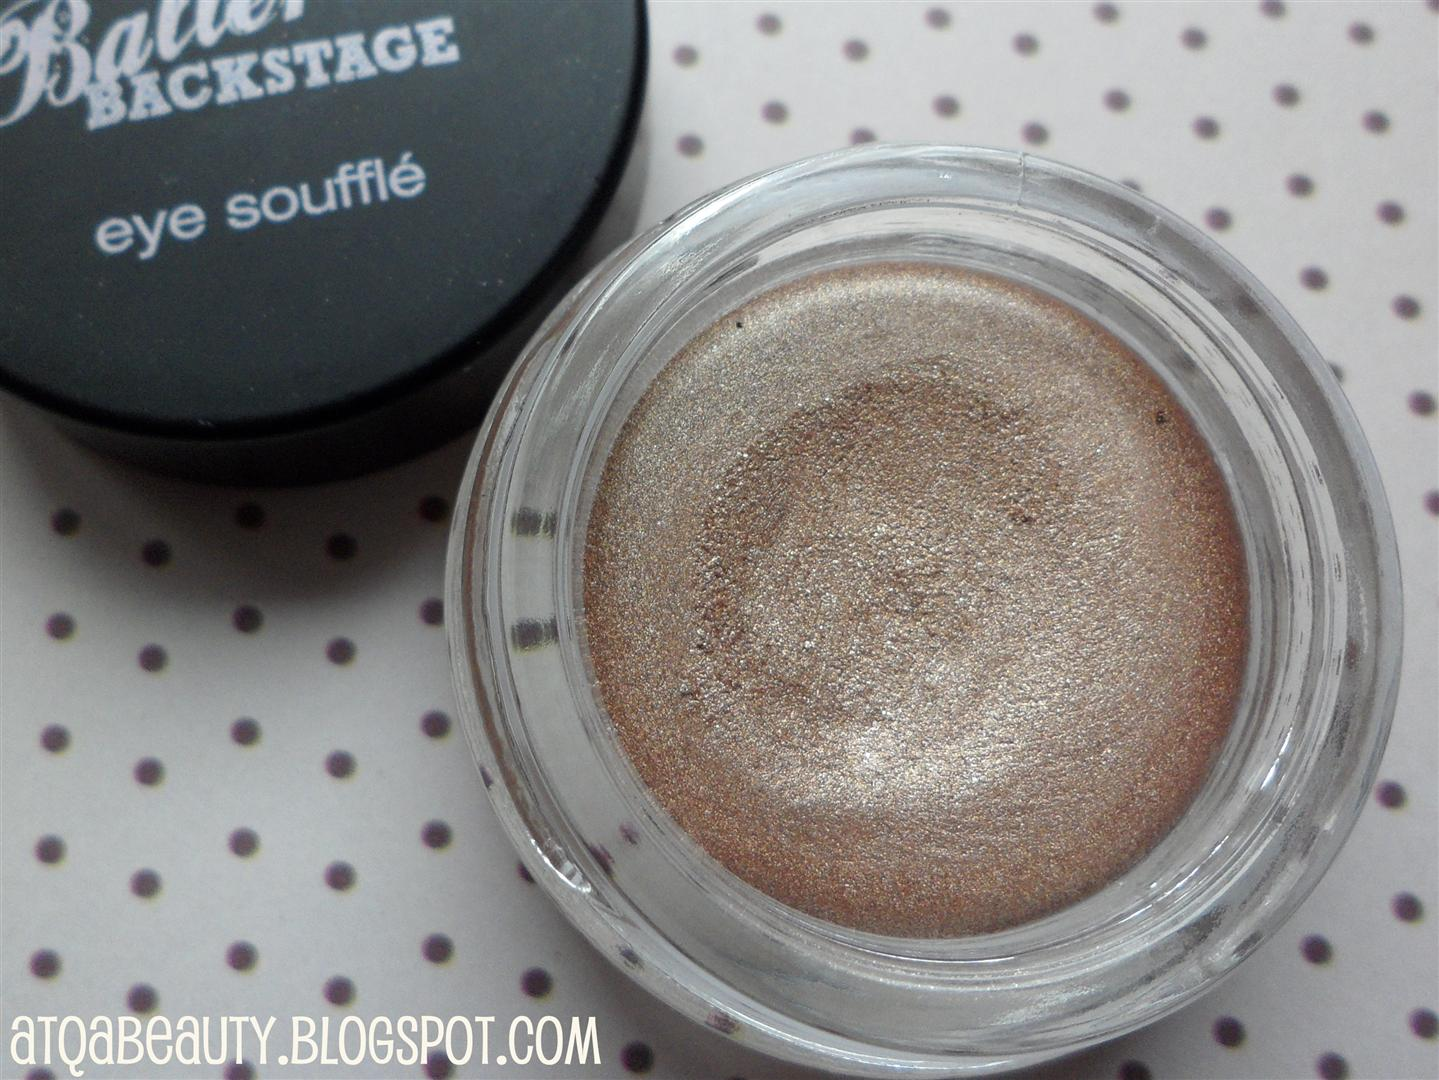 Essence, Ballerina Backstage LE, Eye Souffle, 02 Pas Des Copper